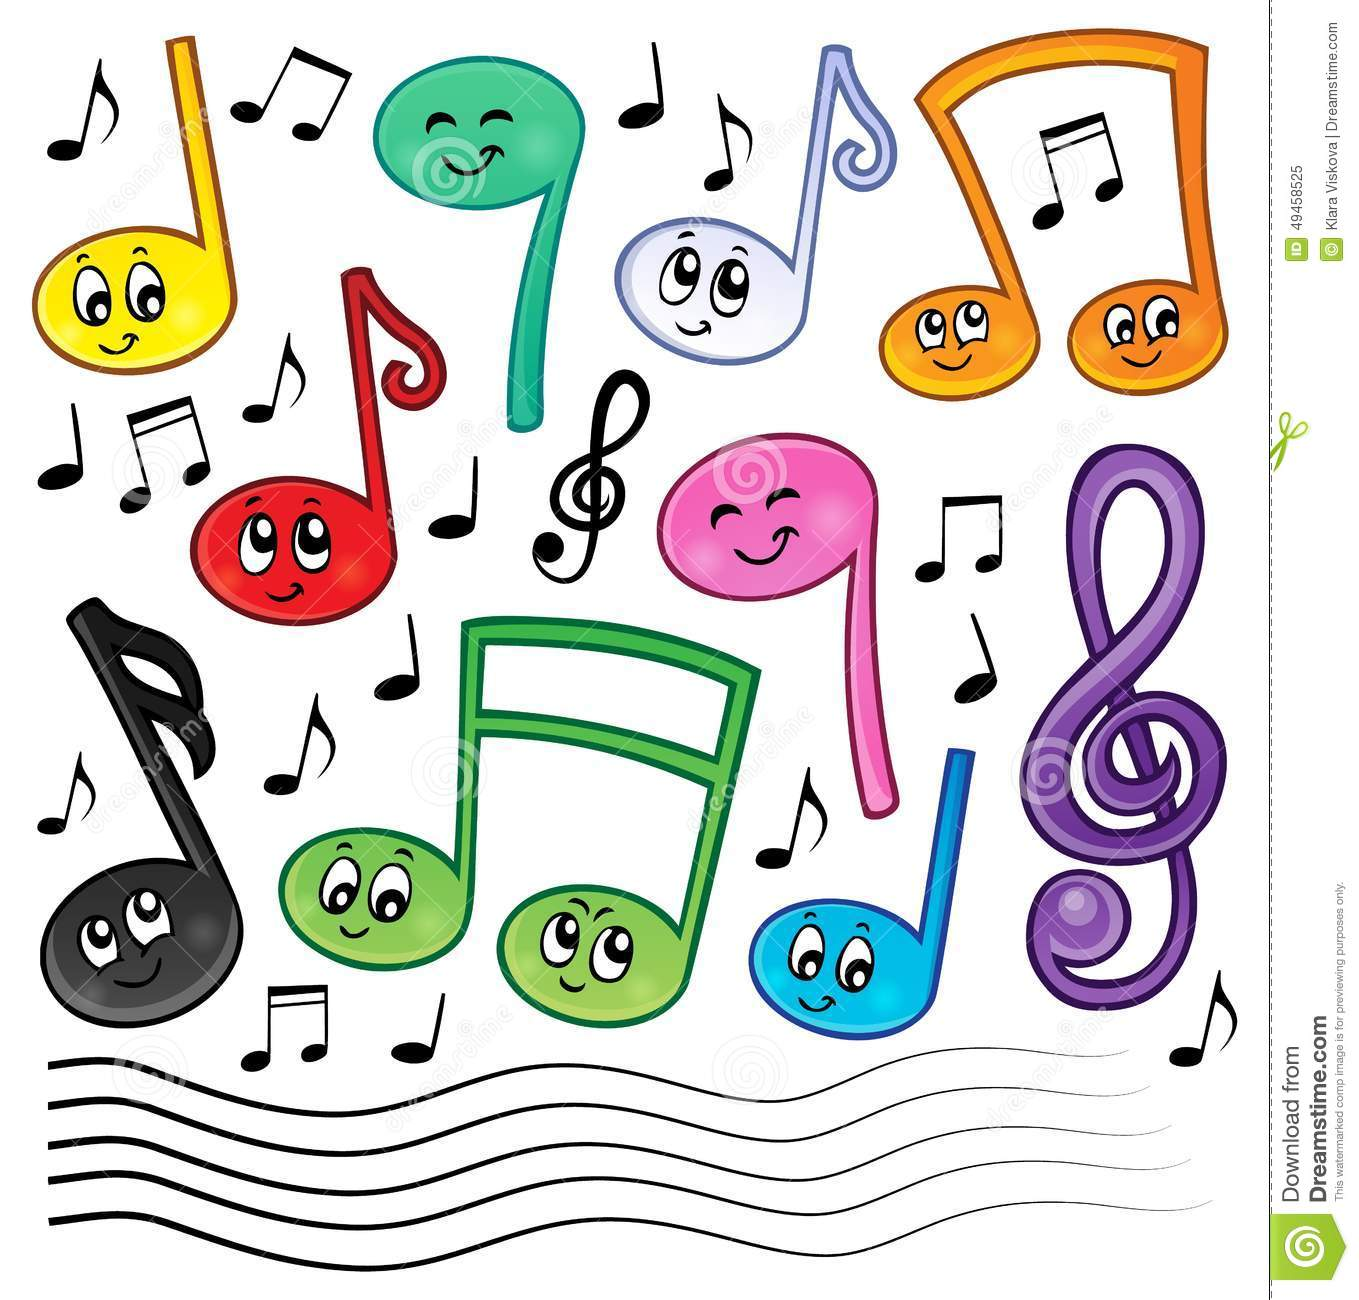 Cartoon Music Notes Theme Image 1 Stock Vector - Image: 49458525